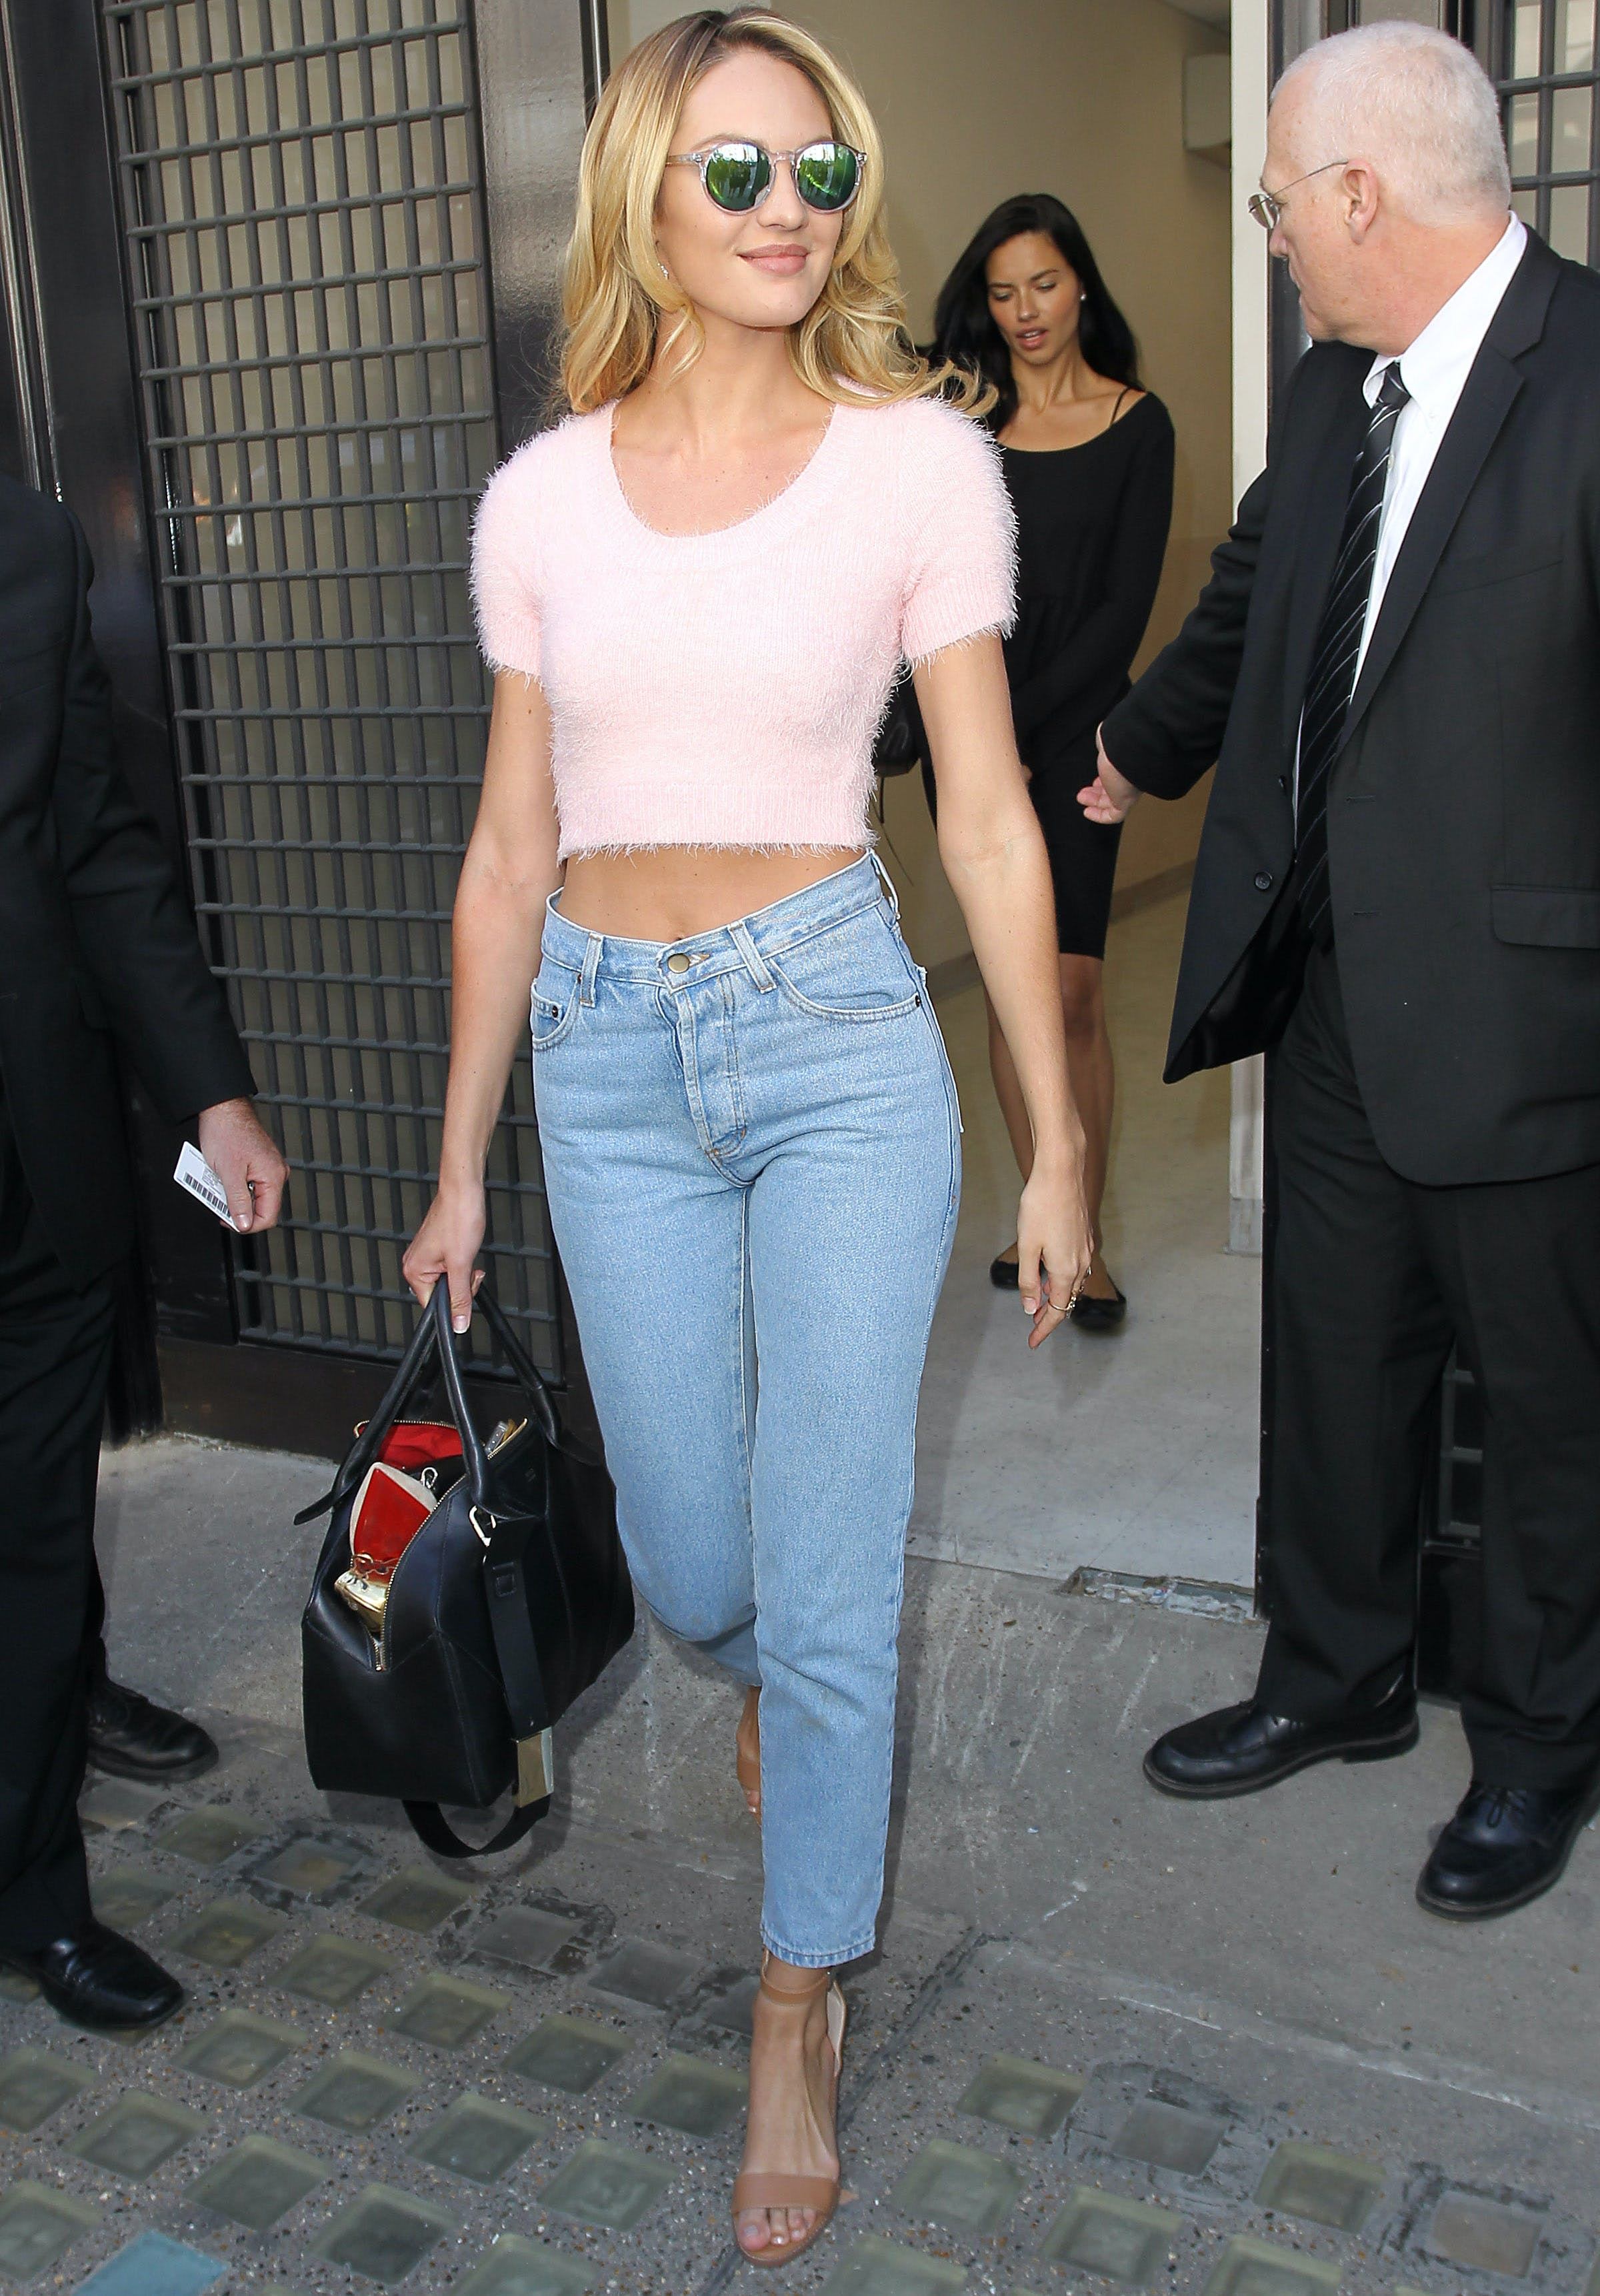 candice swanepoel wears a shrunken sweater from the 90s